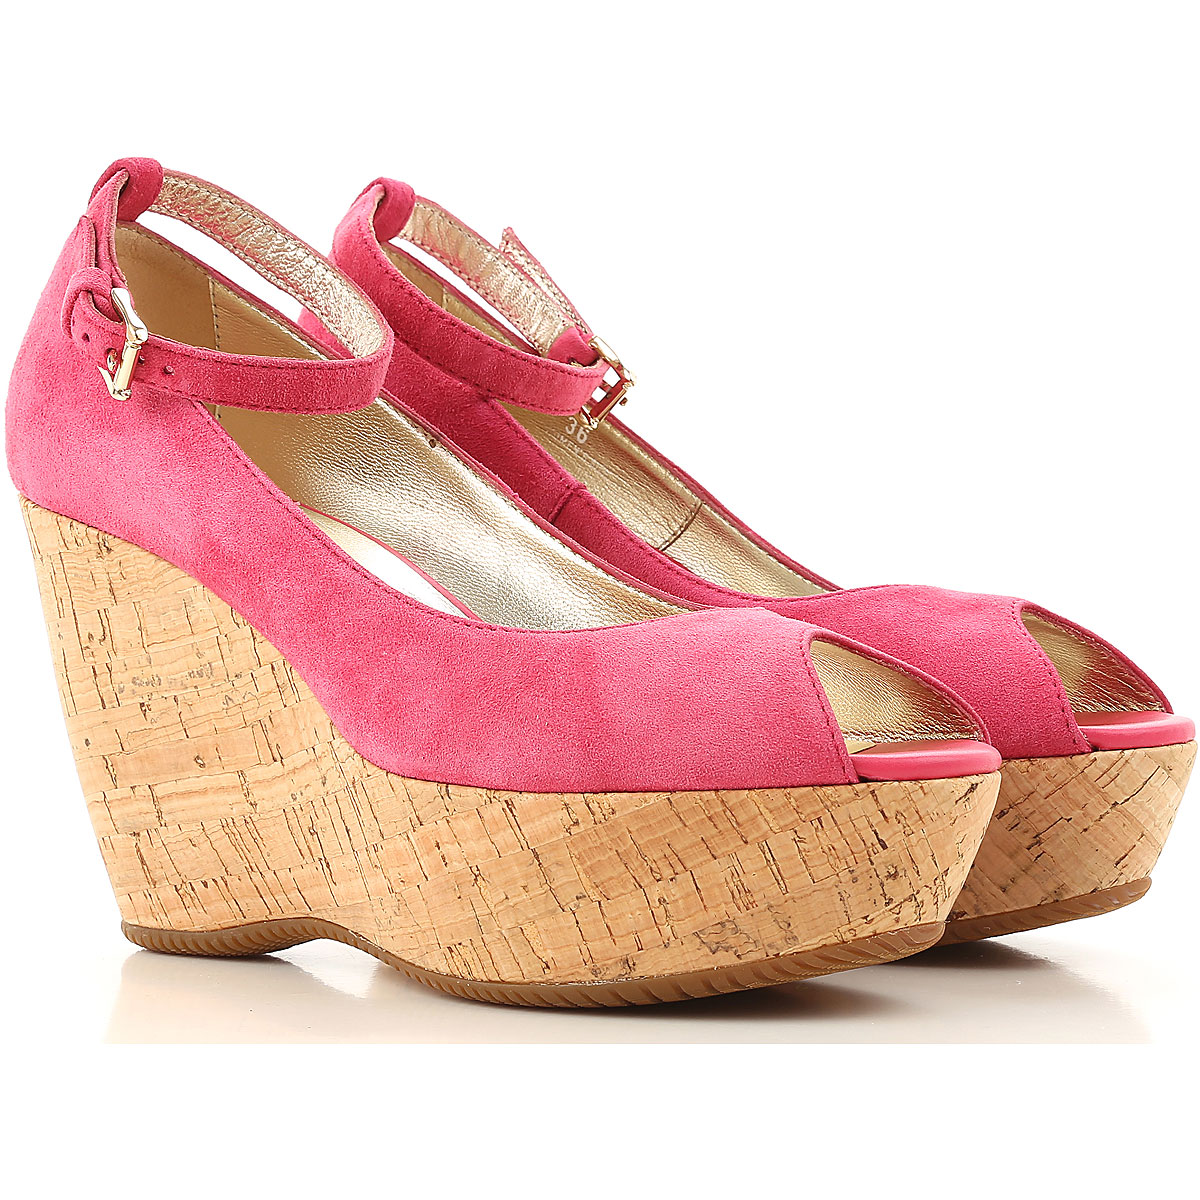 Hogan Wedges for Women in Outlet Fuchsia USA - GOOFASH